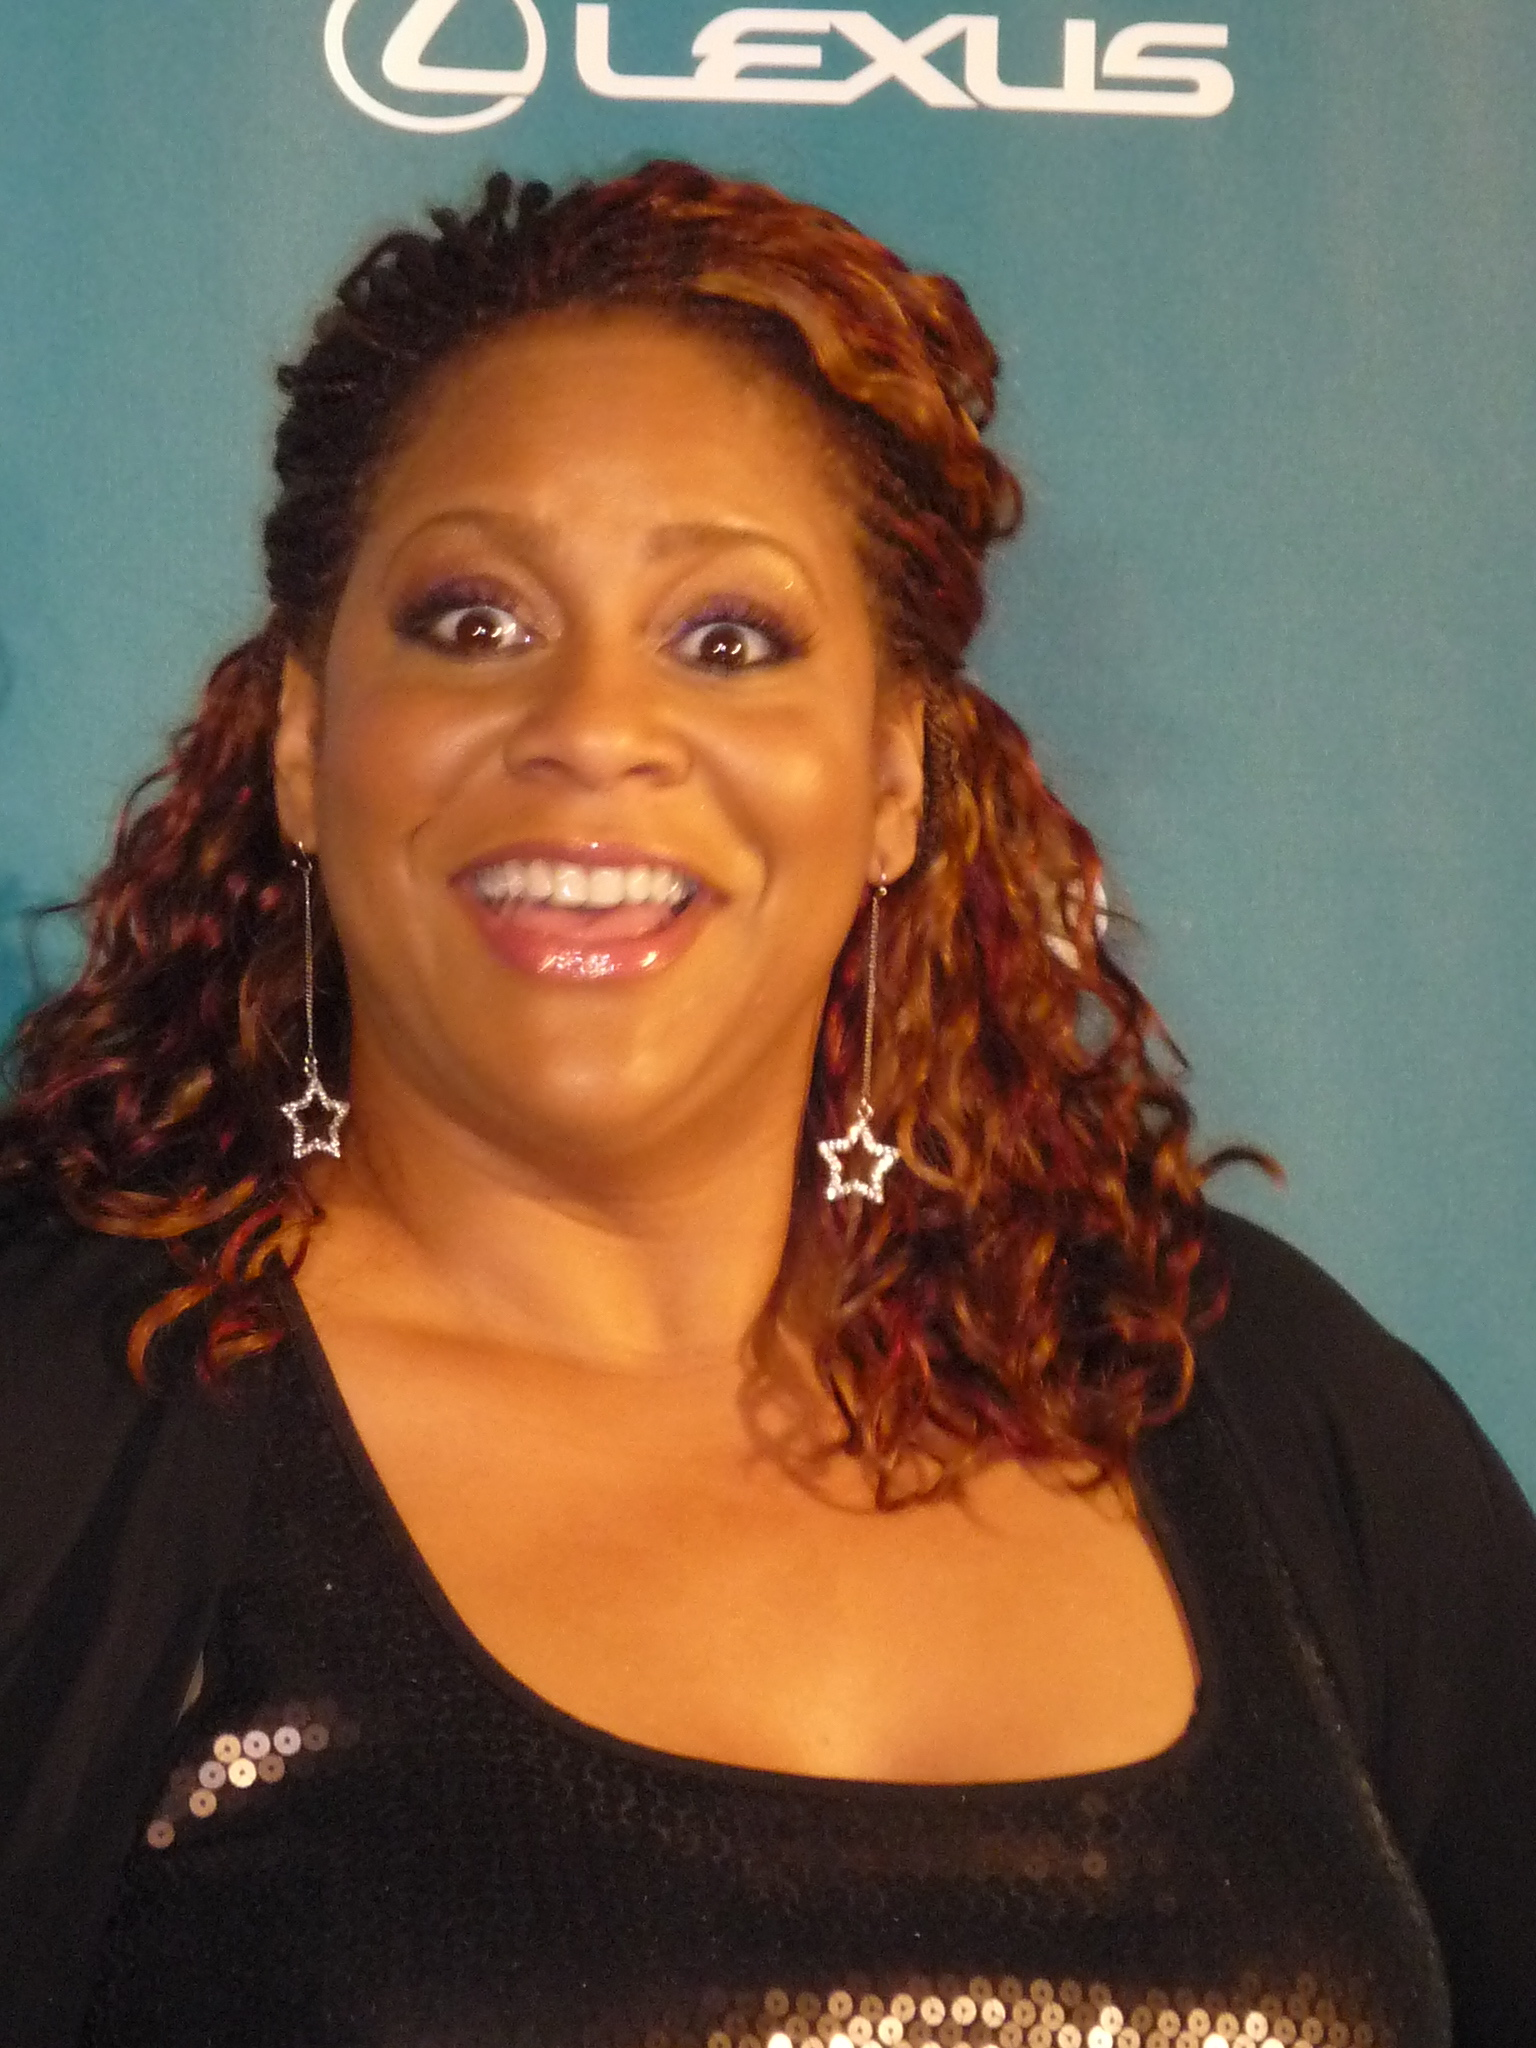 The 56-year old daughter of father (?) and mother(?) Kim Coles in 2018 photo. Kim Coles earned a  million dollar salary - leaving the net worth at 1 million in 2018